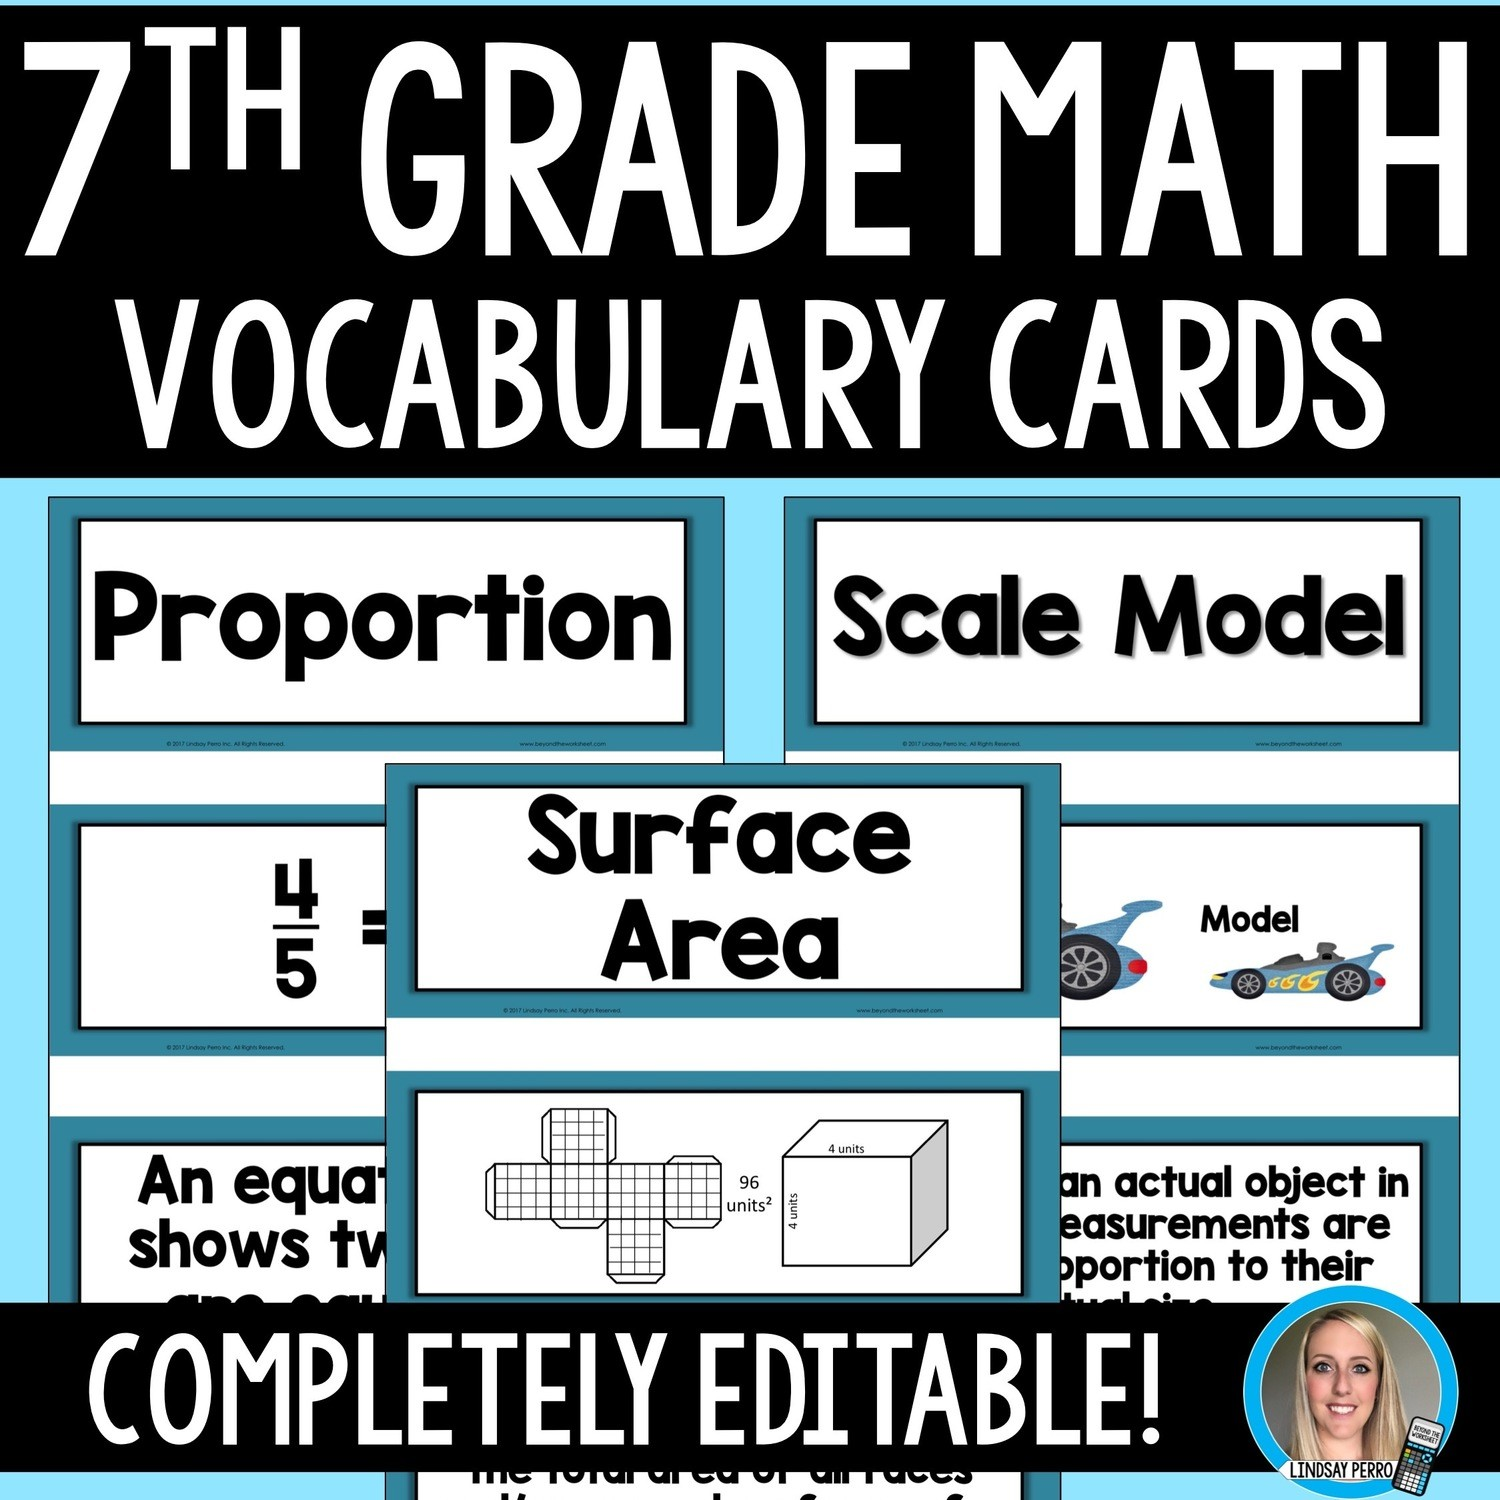 hight resolution of 7th Grade Math Vocabulary Cards   Store - Lindsay Perro